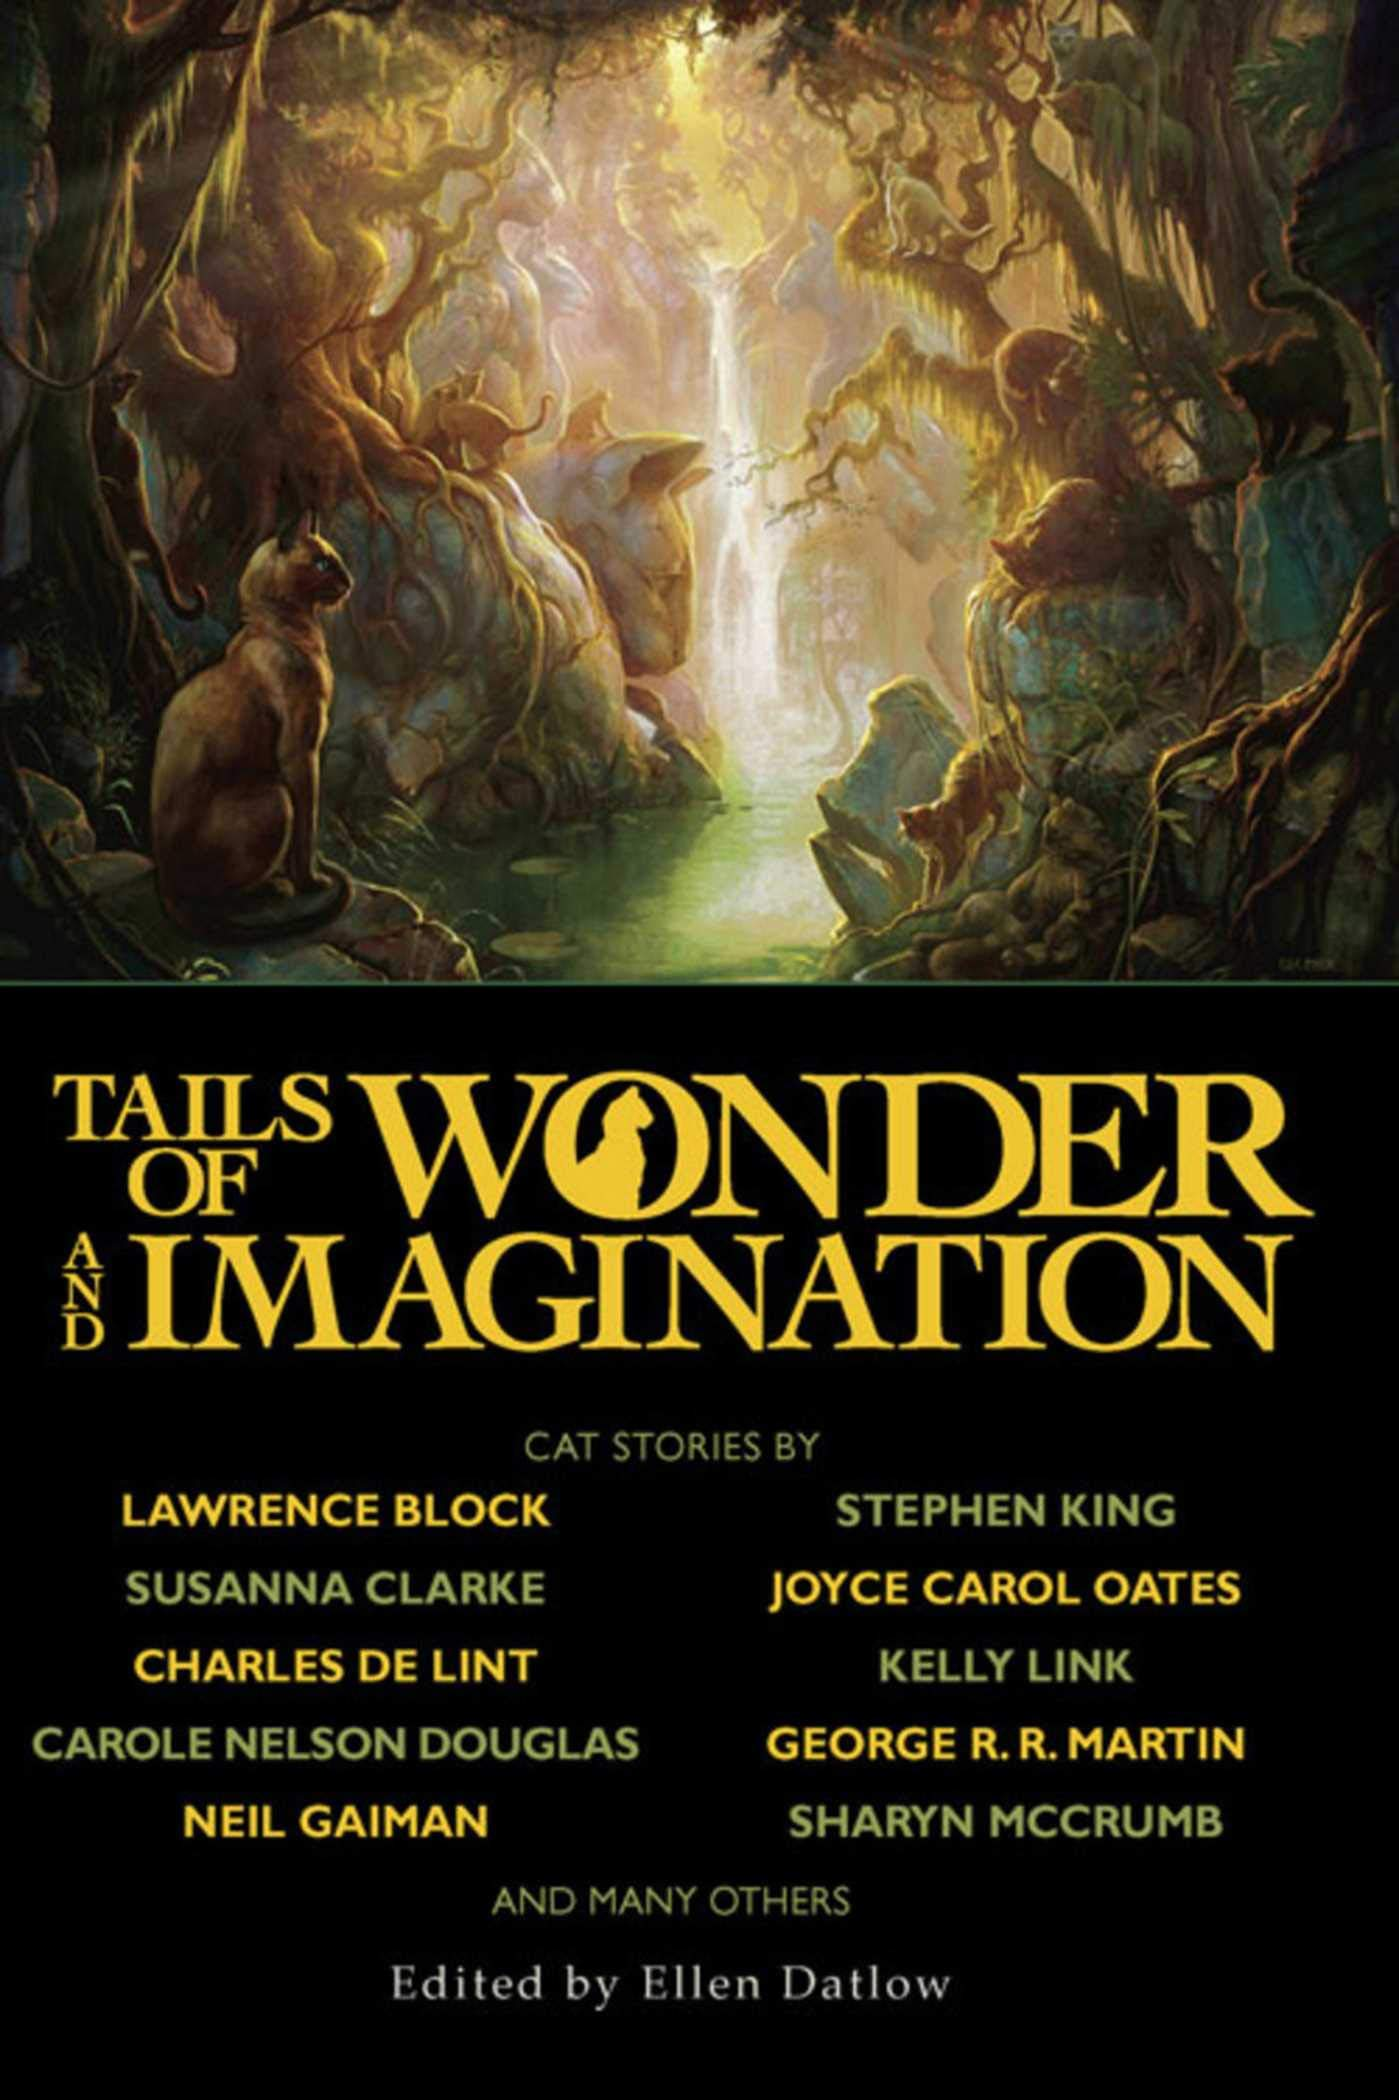 Image result for tails of wonder and imagination book cover